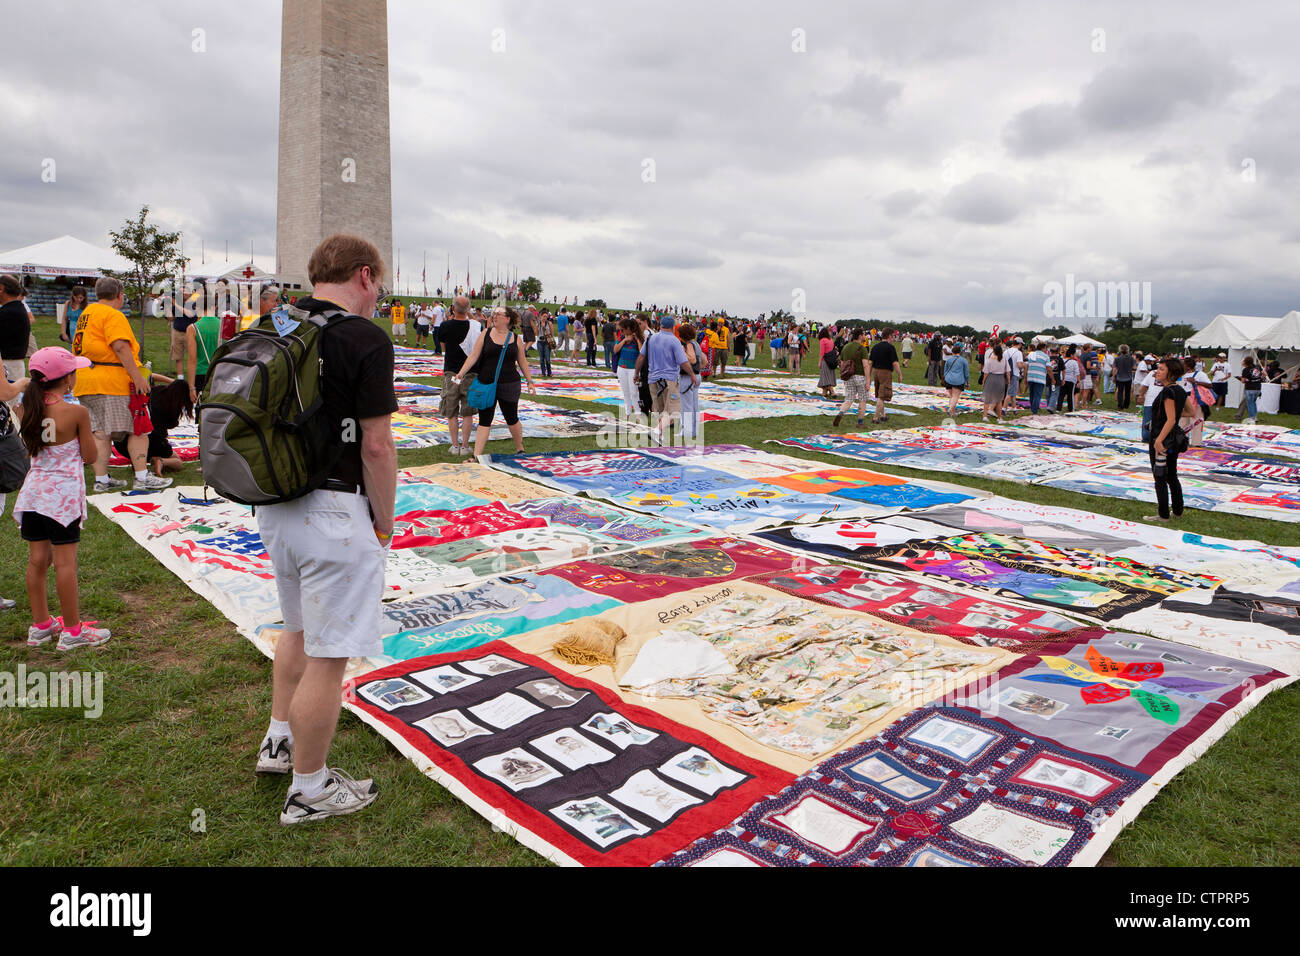 AIDS Memorial Quilt panels are put on display on the Mall to mark its 25th anniversary - July 22, 2012, Washington, - Stock Image